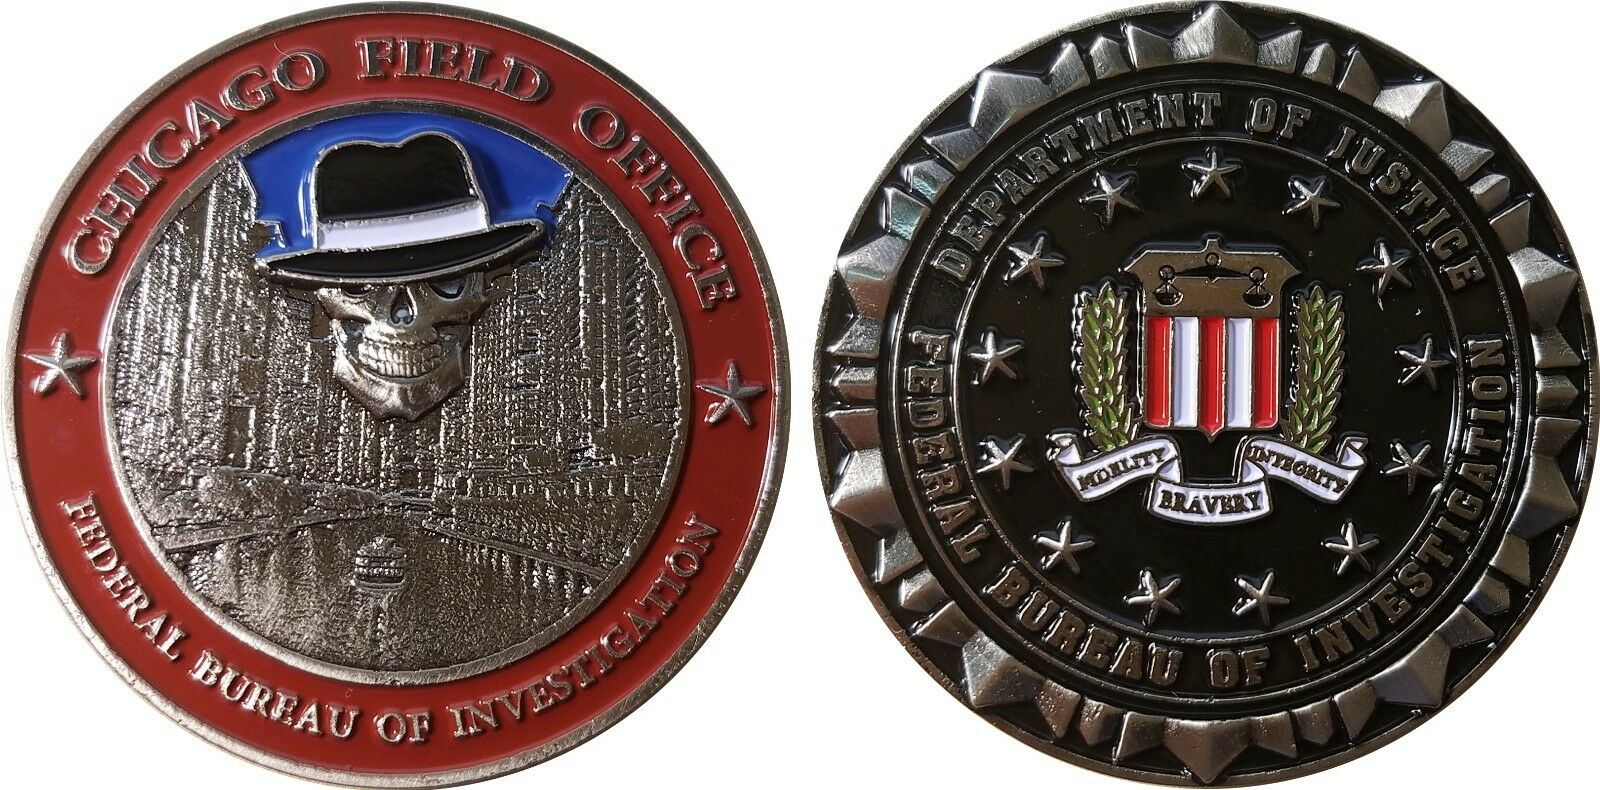 Chicago Field Office FBI challenge coin 2